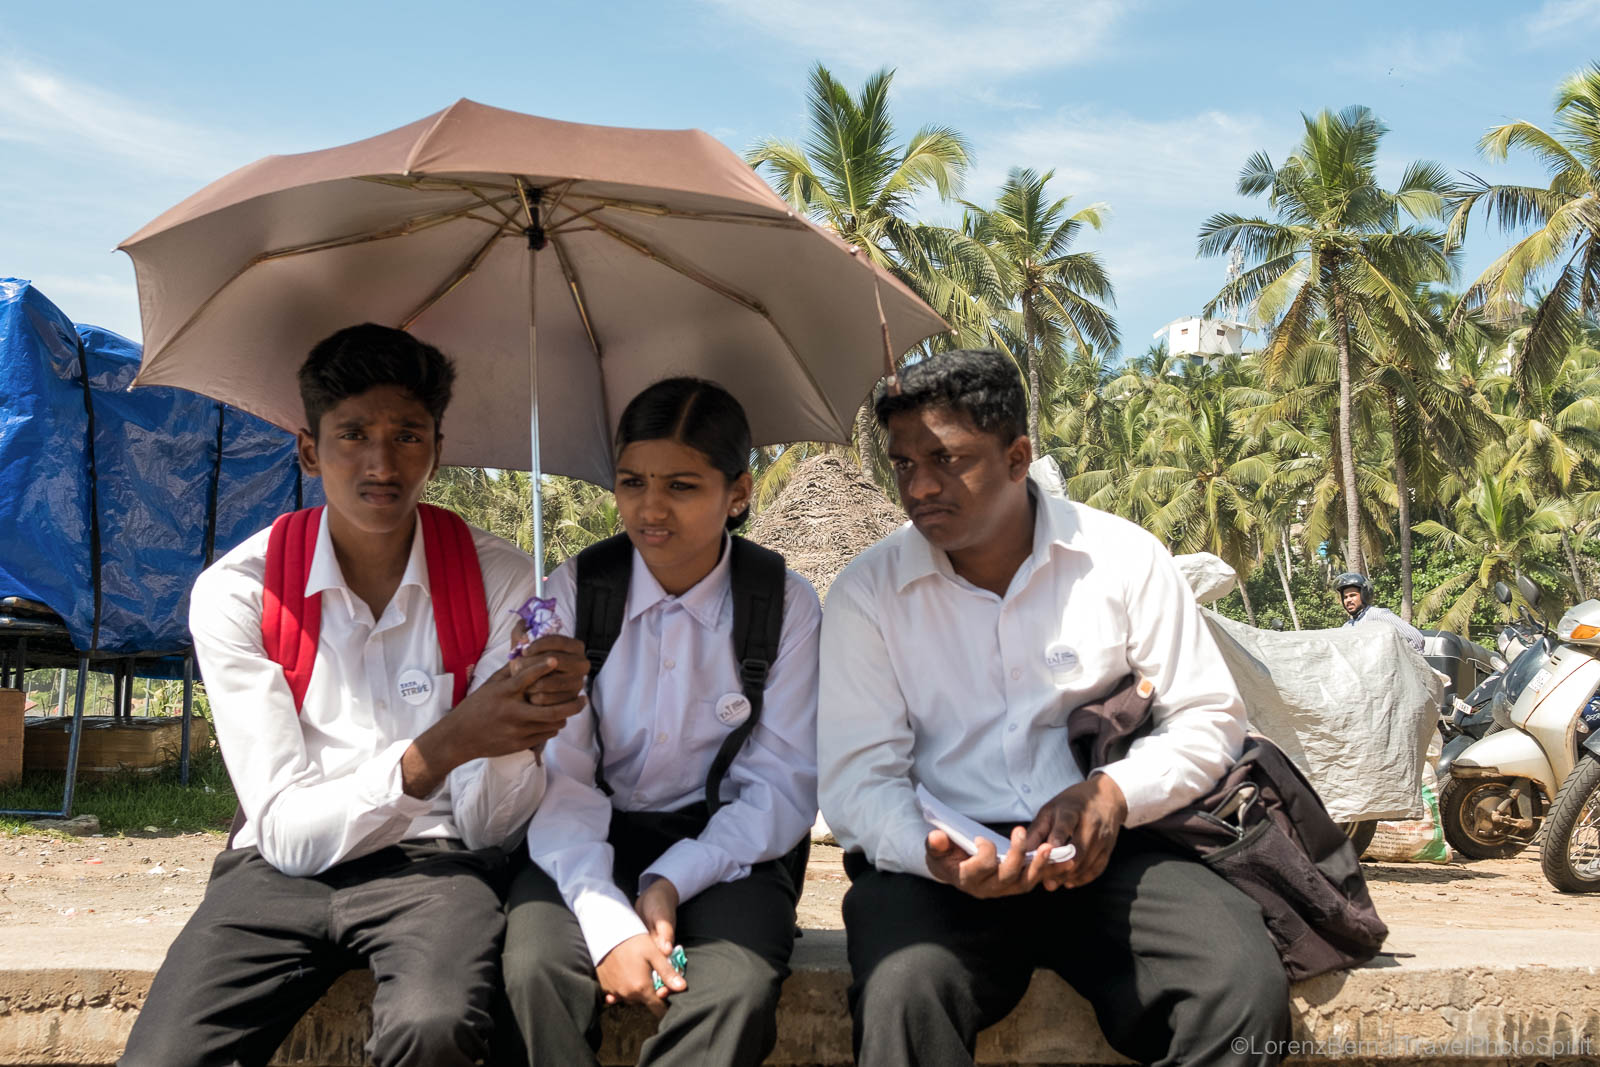 Young people protecting themselves from the sun in Kerala, India